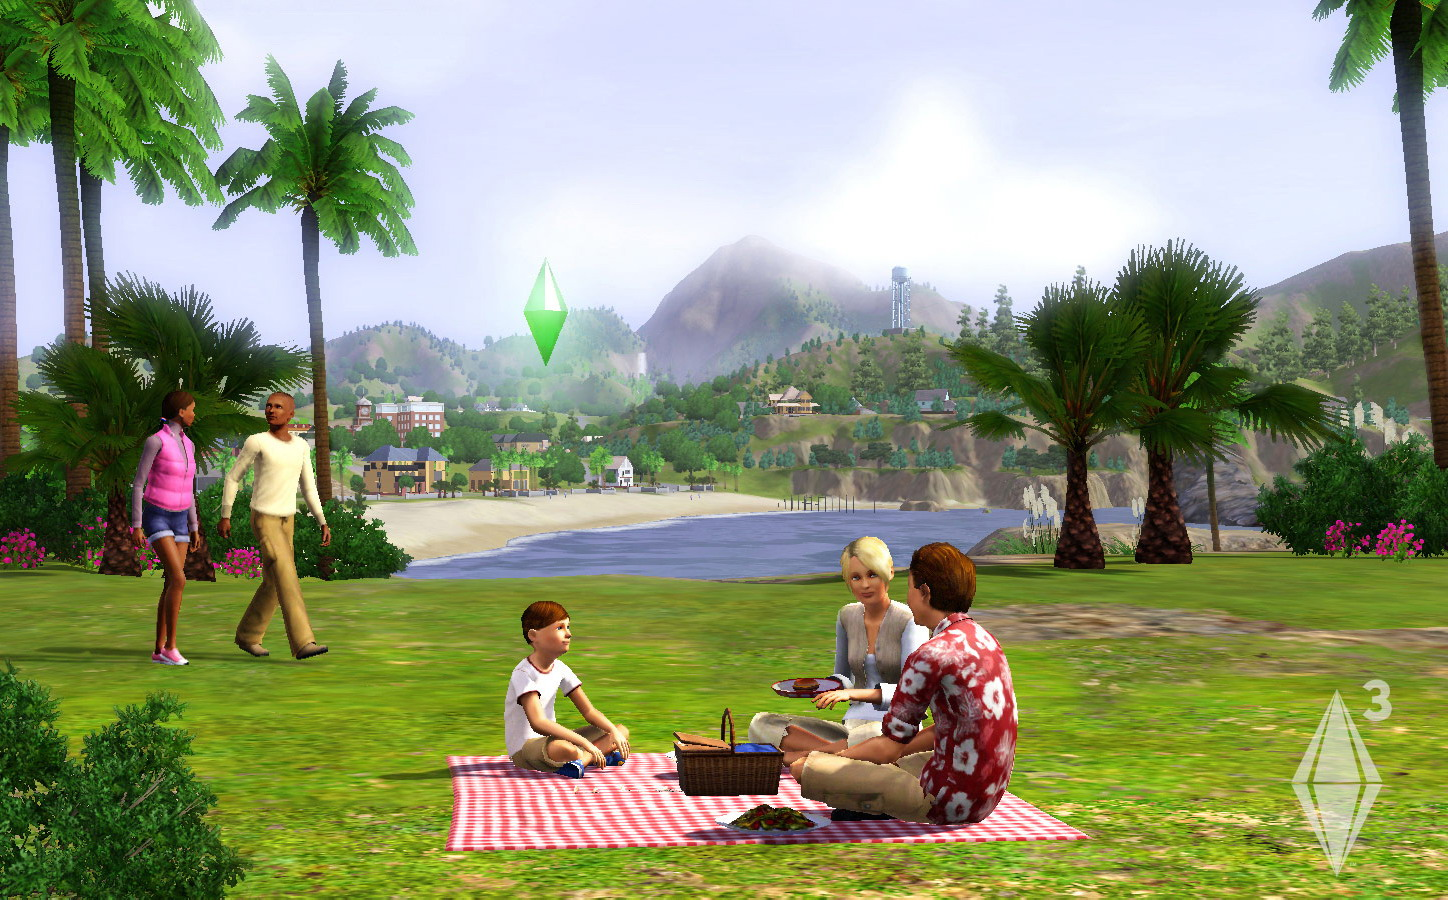 http://www.mczone.ru/Images/News/sims3-33-l.jpg